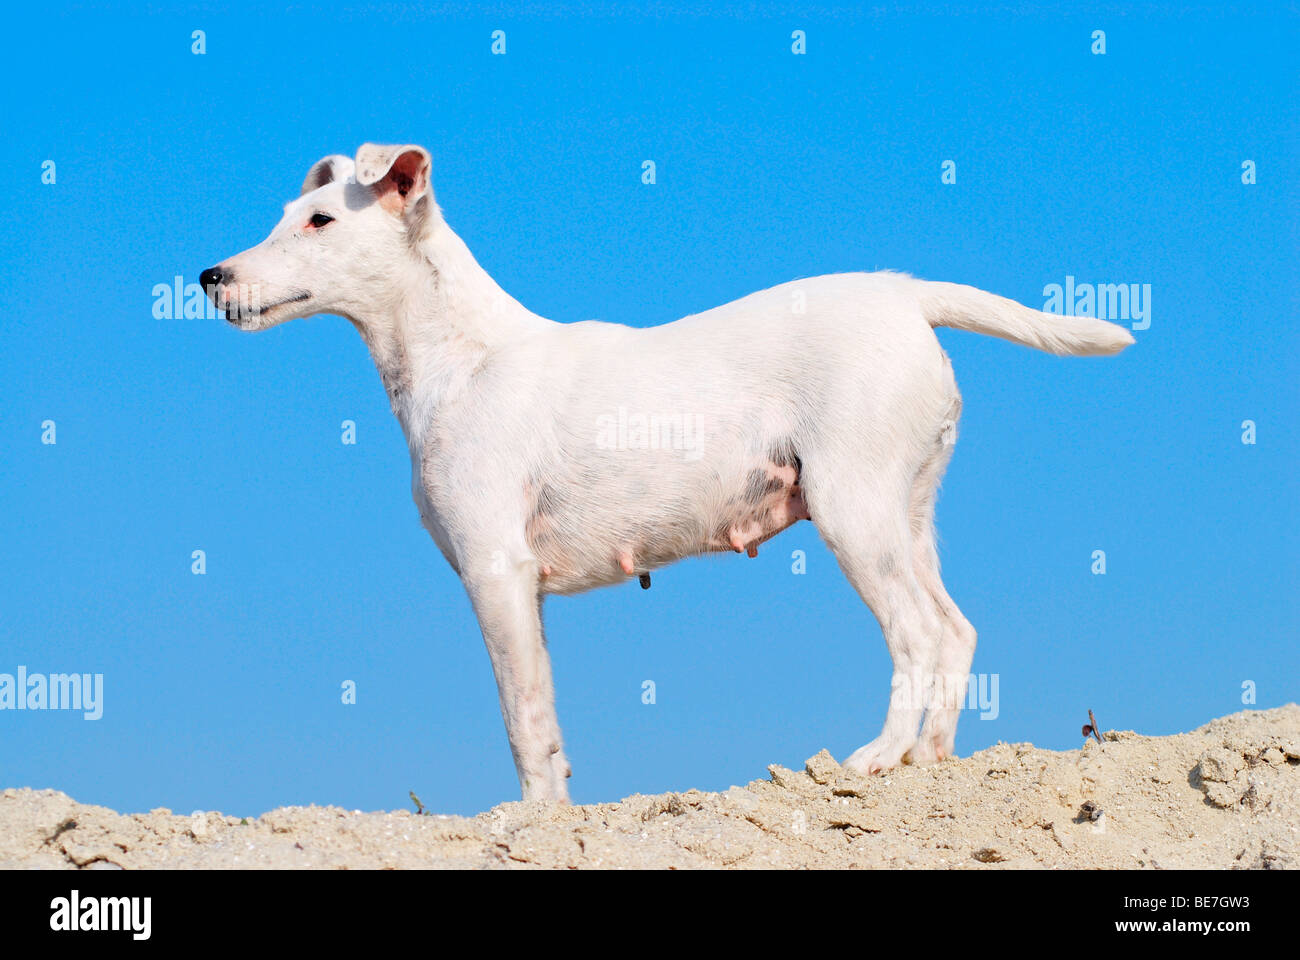 Smooth Fox Terrier Stock Photos & Smooth Fox Terrier Stock Images ...